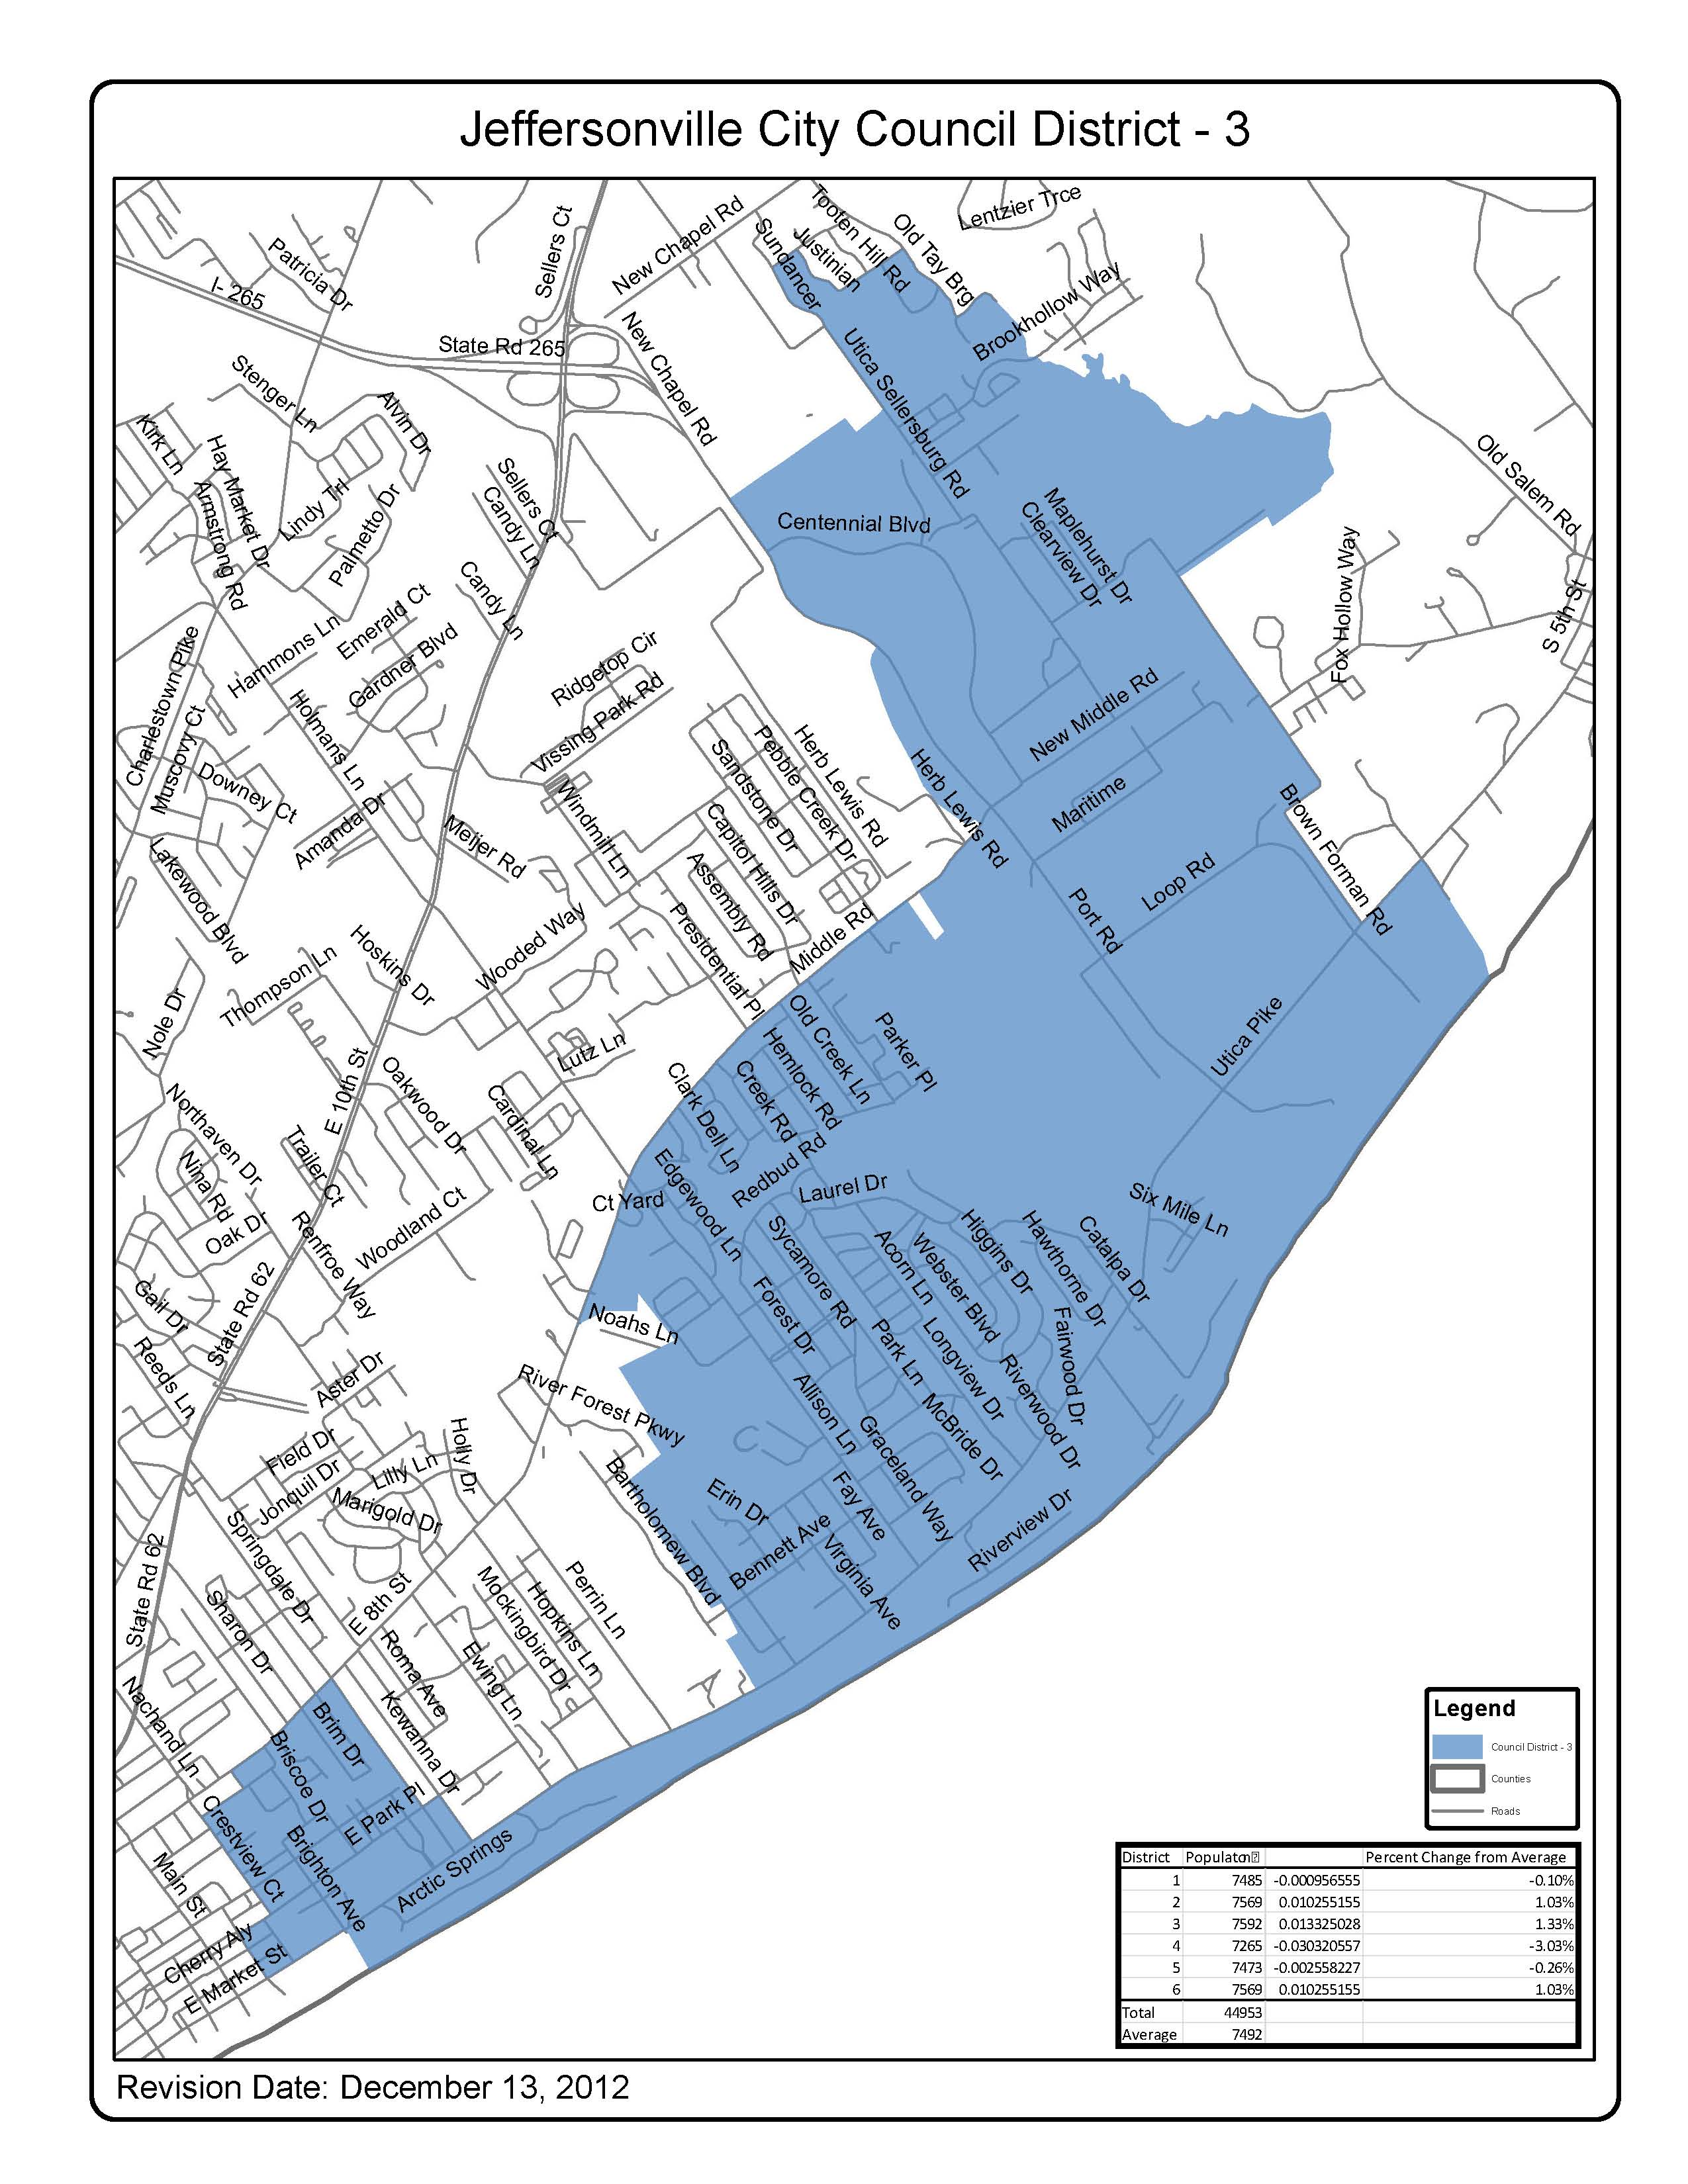 Jeffersonville_City_Council_District_-_3